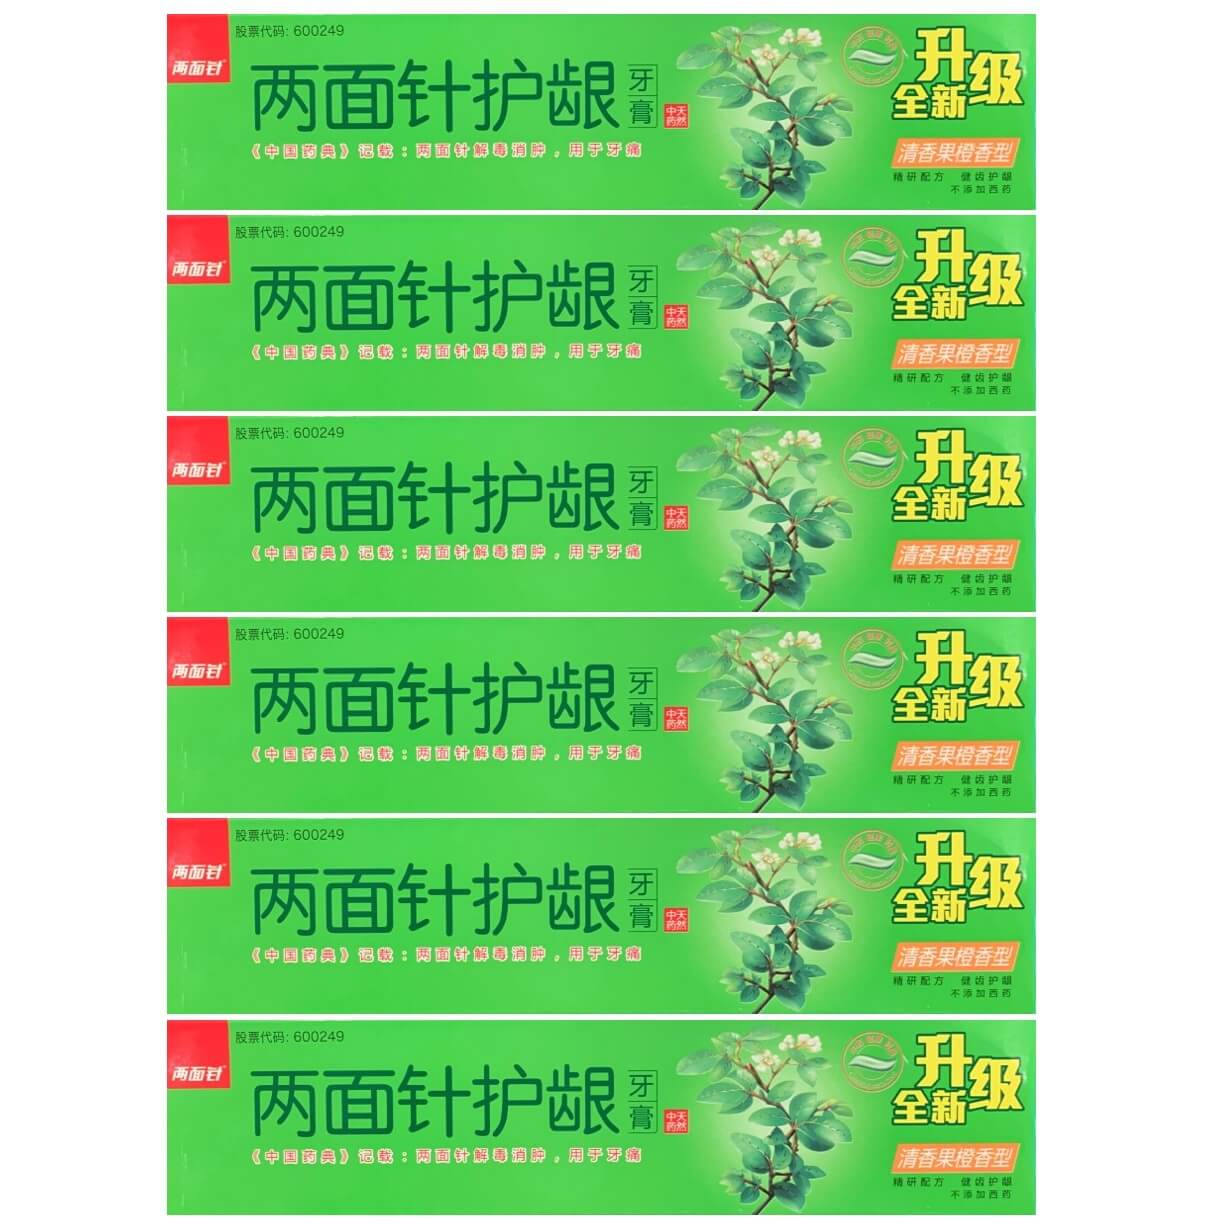 Liang Mian Zhen Herbal Toothpaste, Orange Flavor (105g) - 6 Boxes-Buy at New Green Nutrition